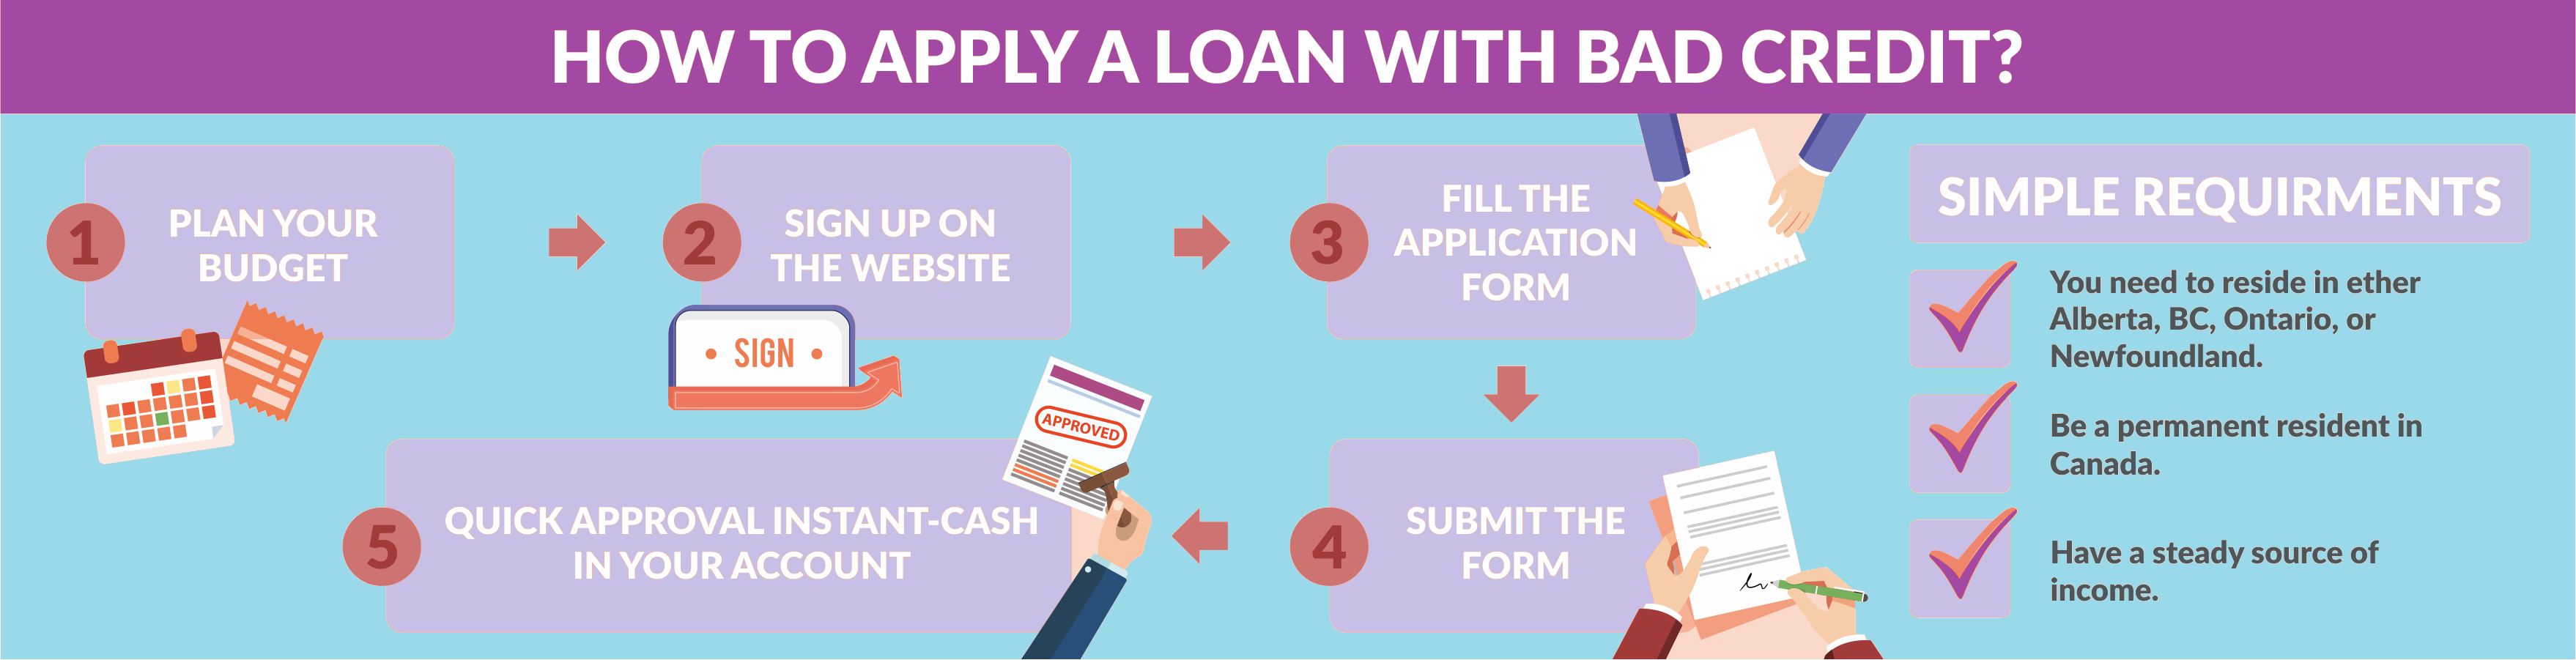 1 Online Canadian Lender 87 Of Bad Credit Personal Loans Guaranteed Are Approved